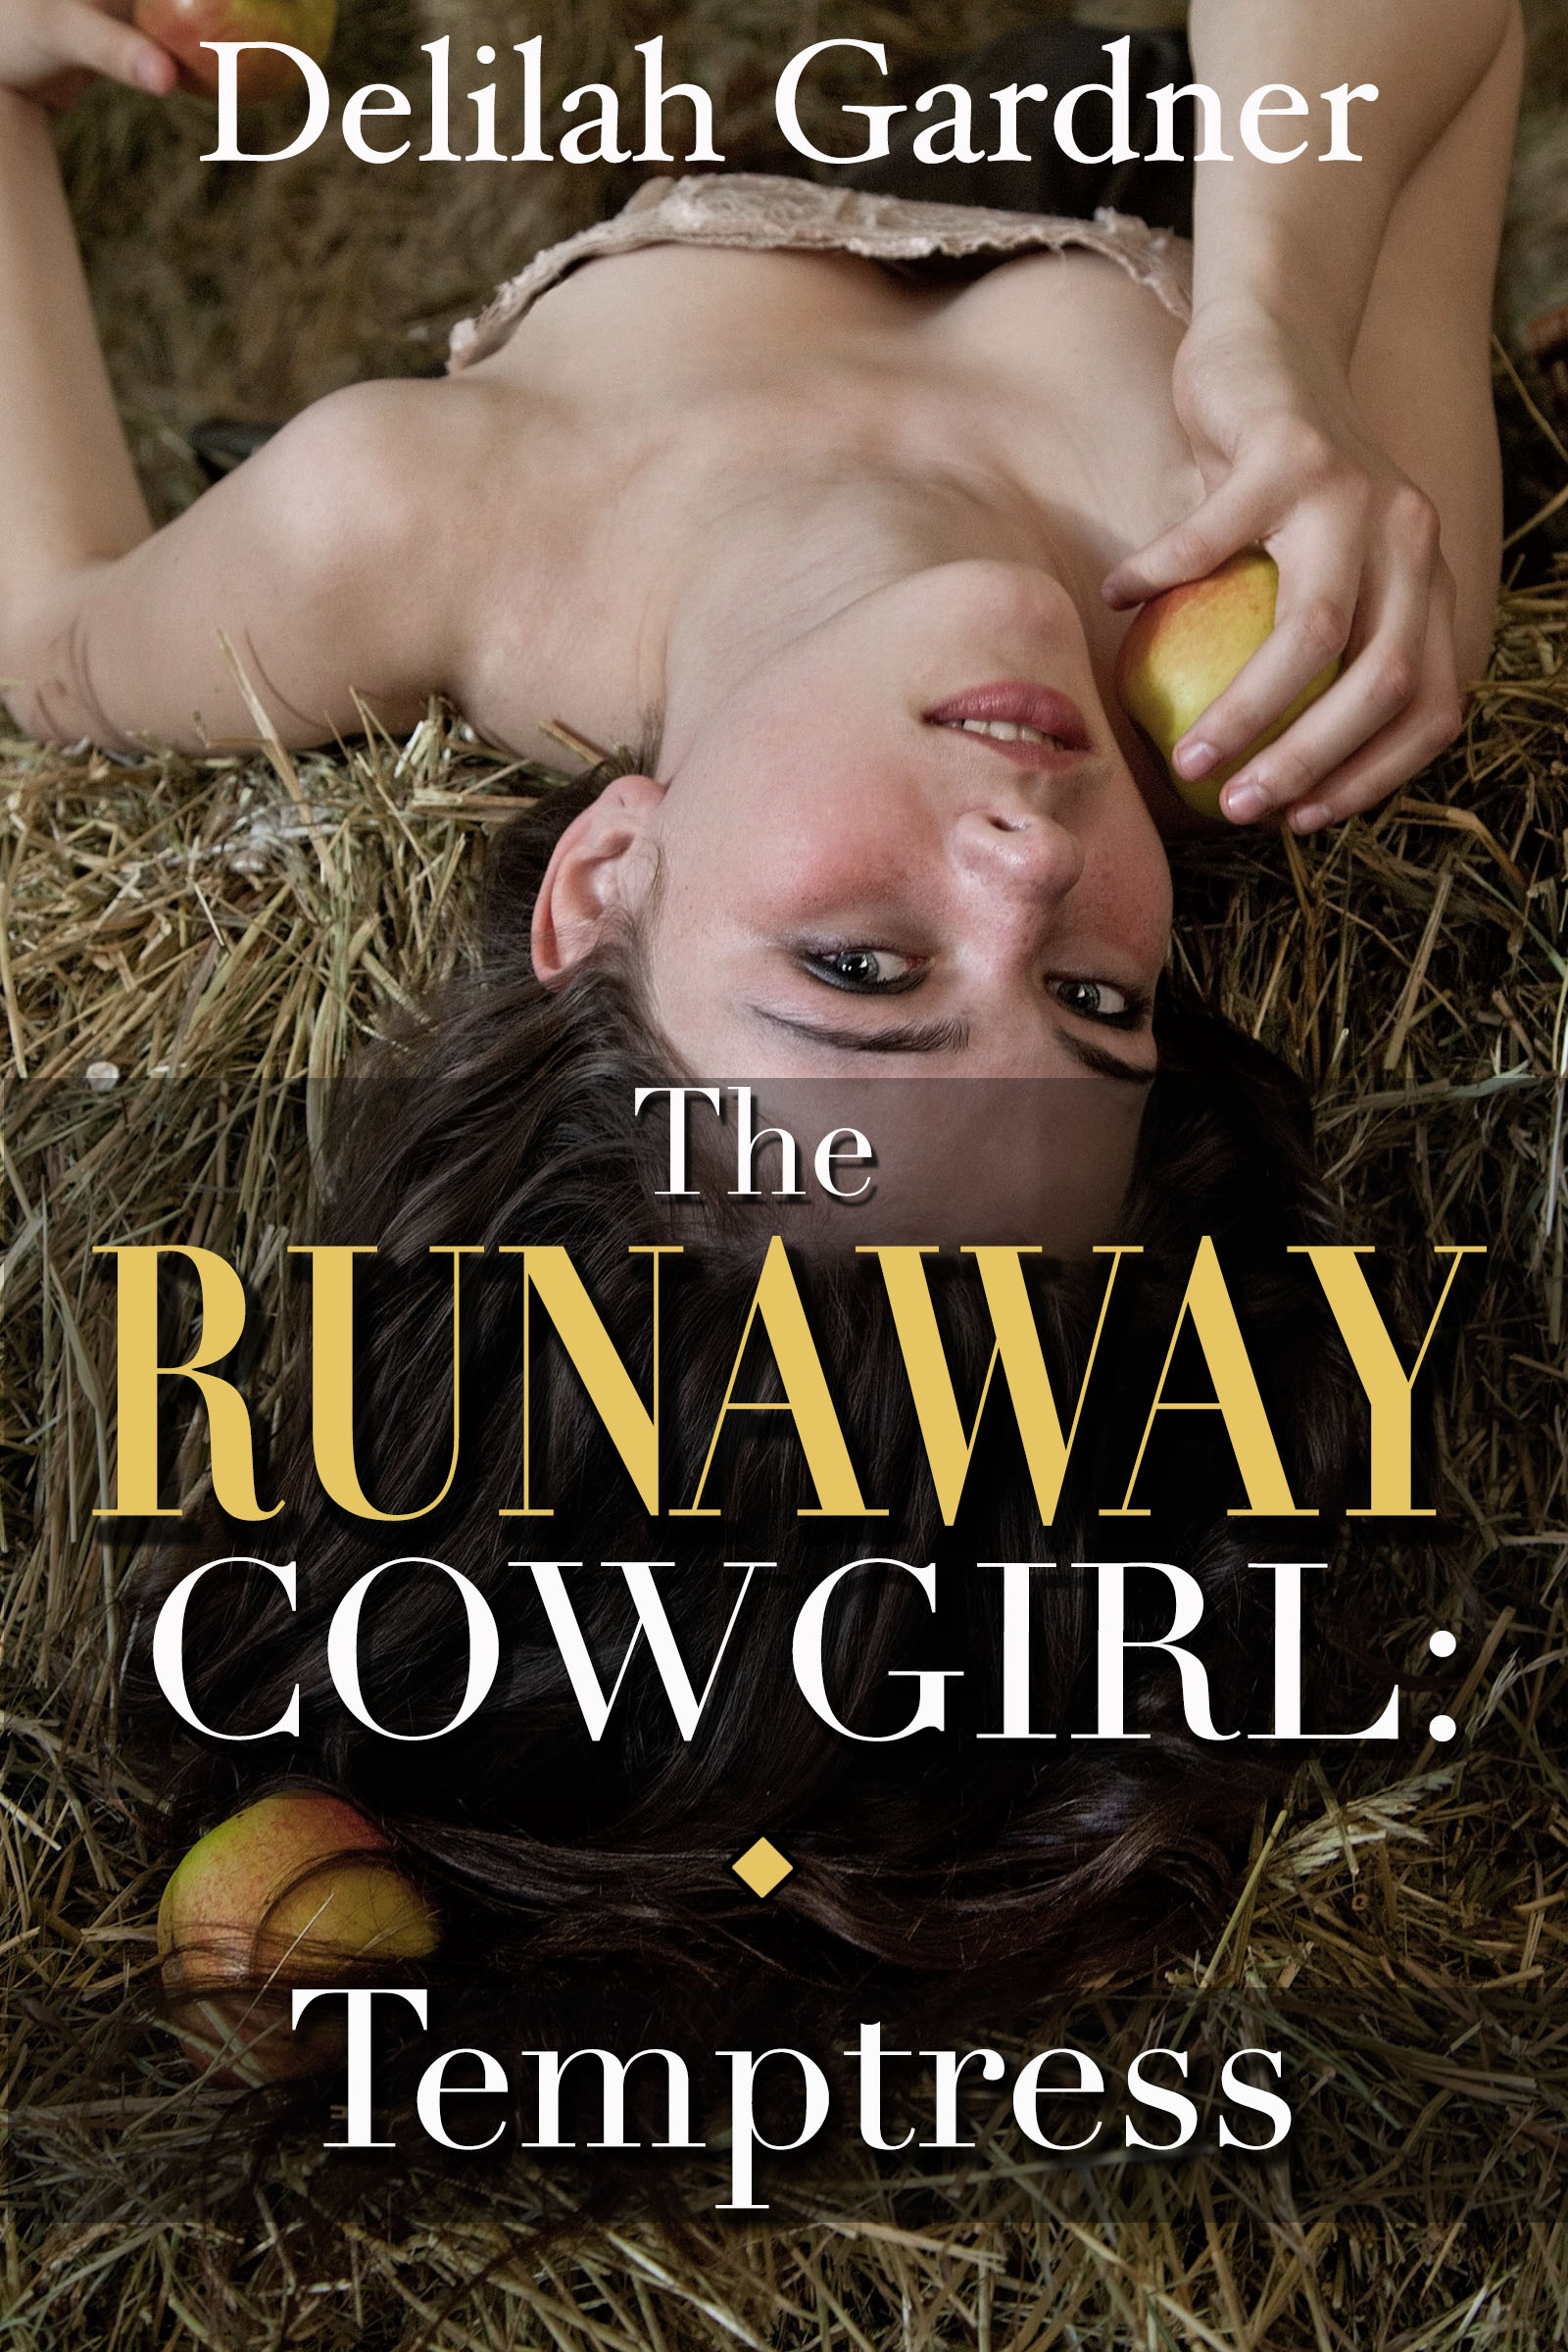 Delilah Gardner - The Runaway Cowgirl: Temptress (Part Two) (A Western Cowboy Erotic Romance)